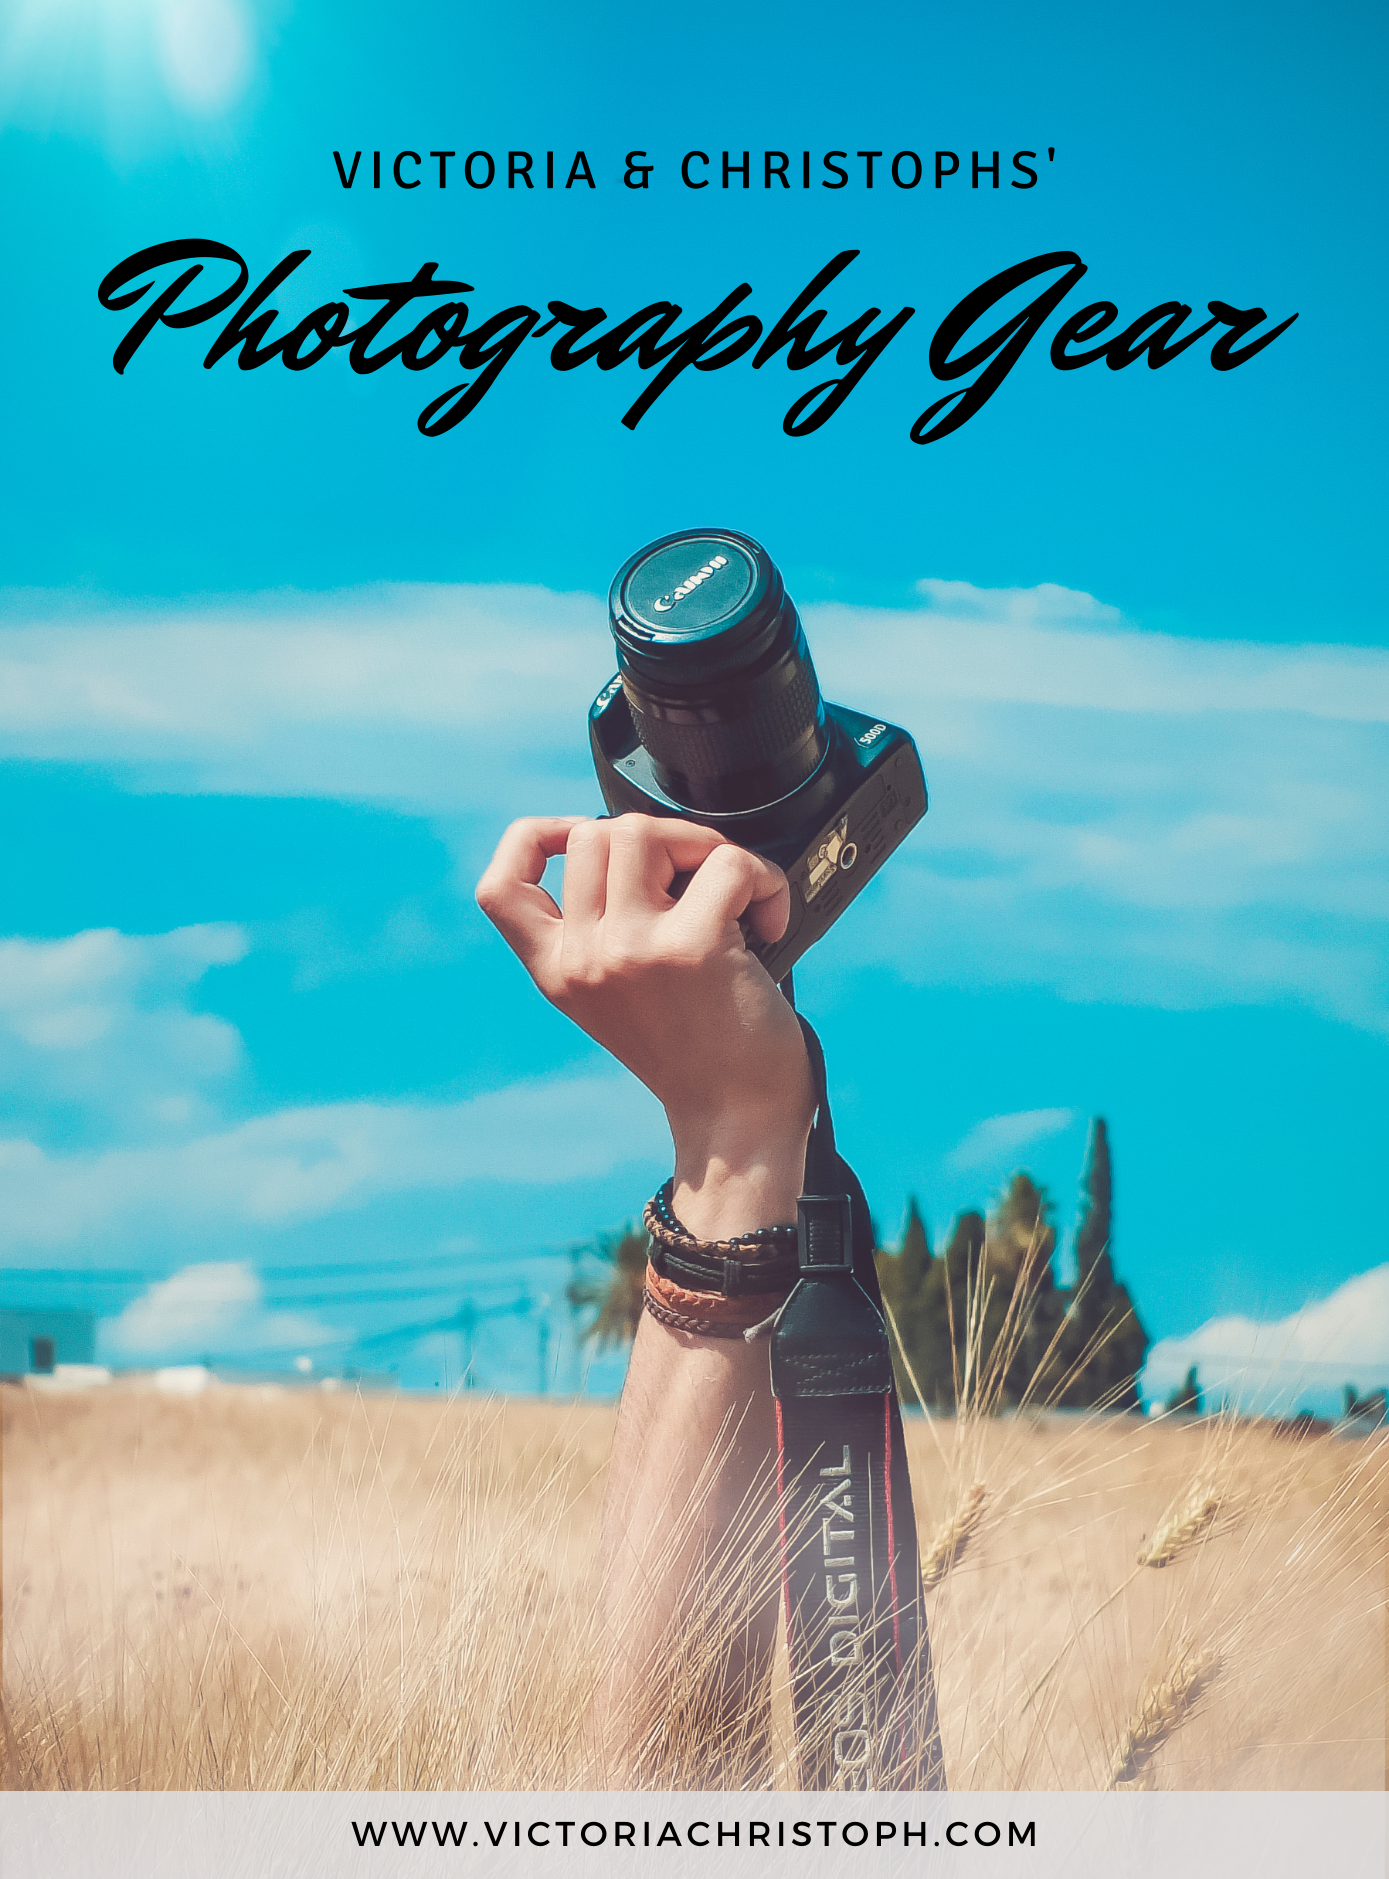 Victoria & Christoph Photography Gear